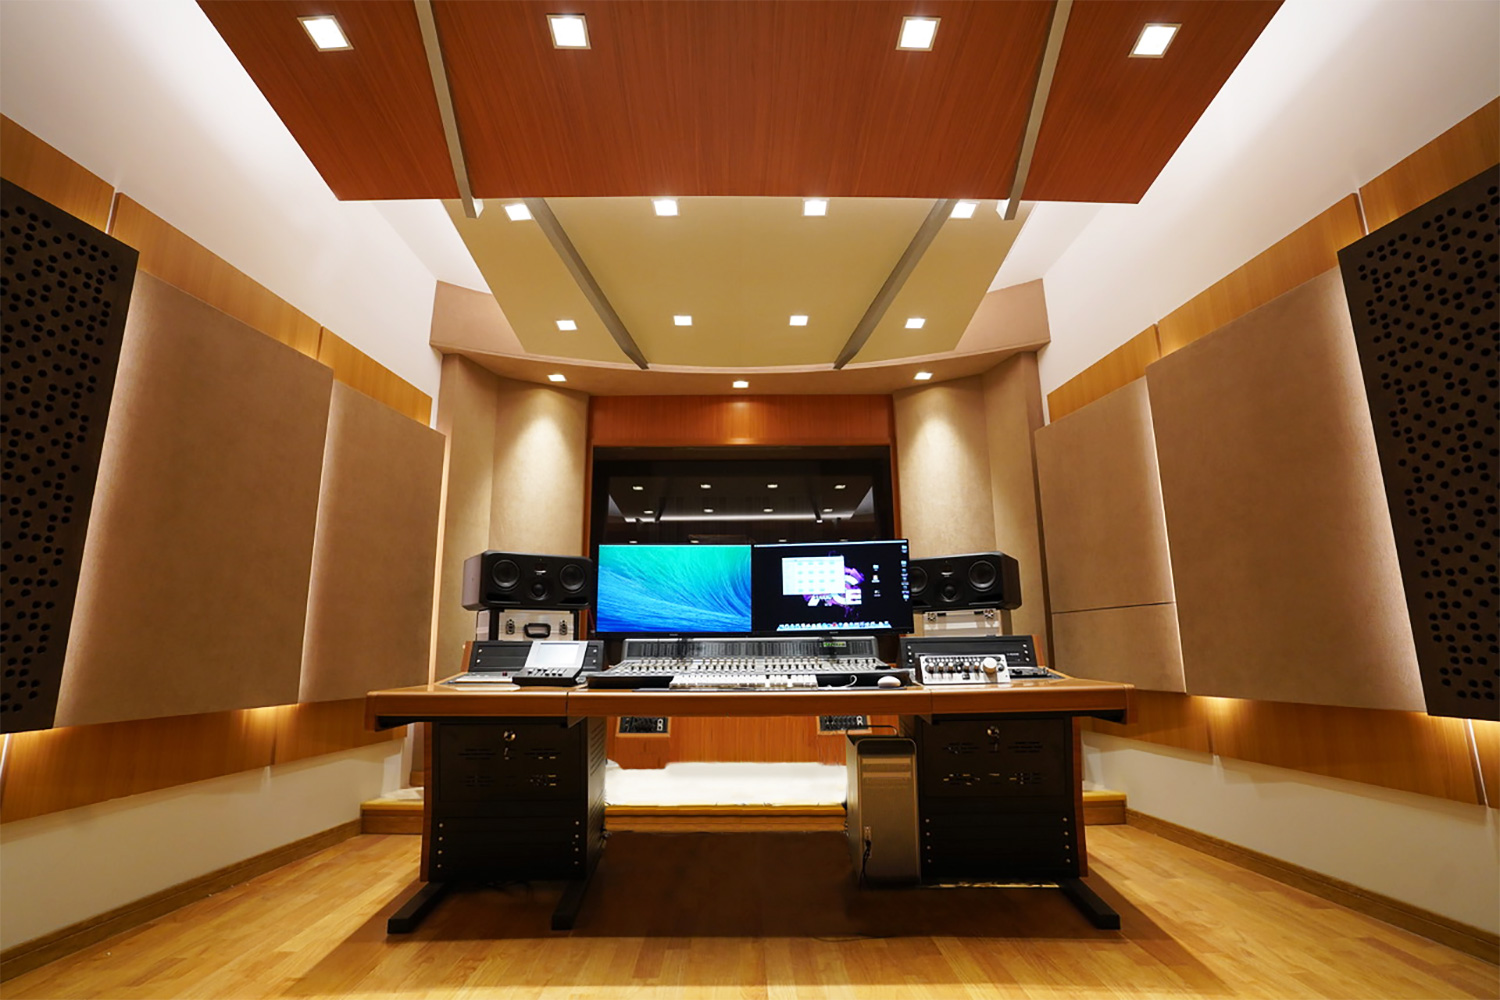 The prestigious Xinghai Conservatory of Music engaged WSDG to develop their new world-class ACE Studios, based on their recent success in Chinese studios. Control Room Front.